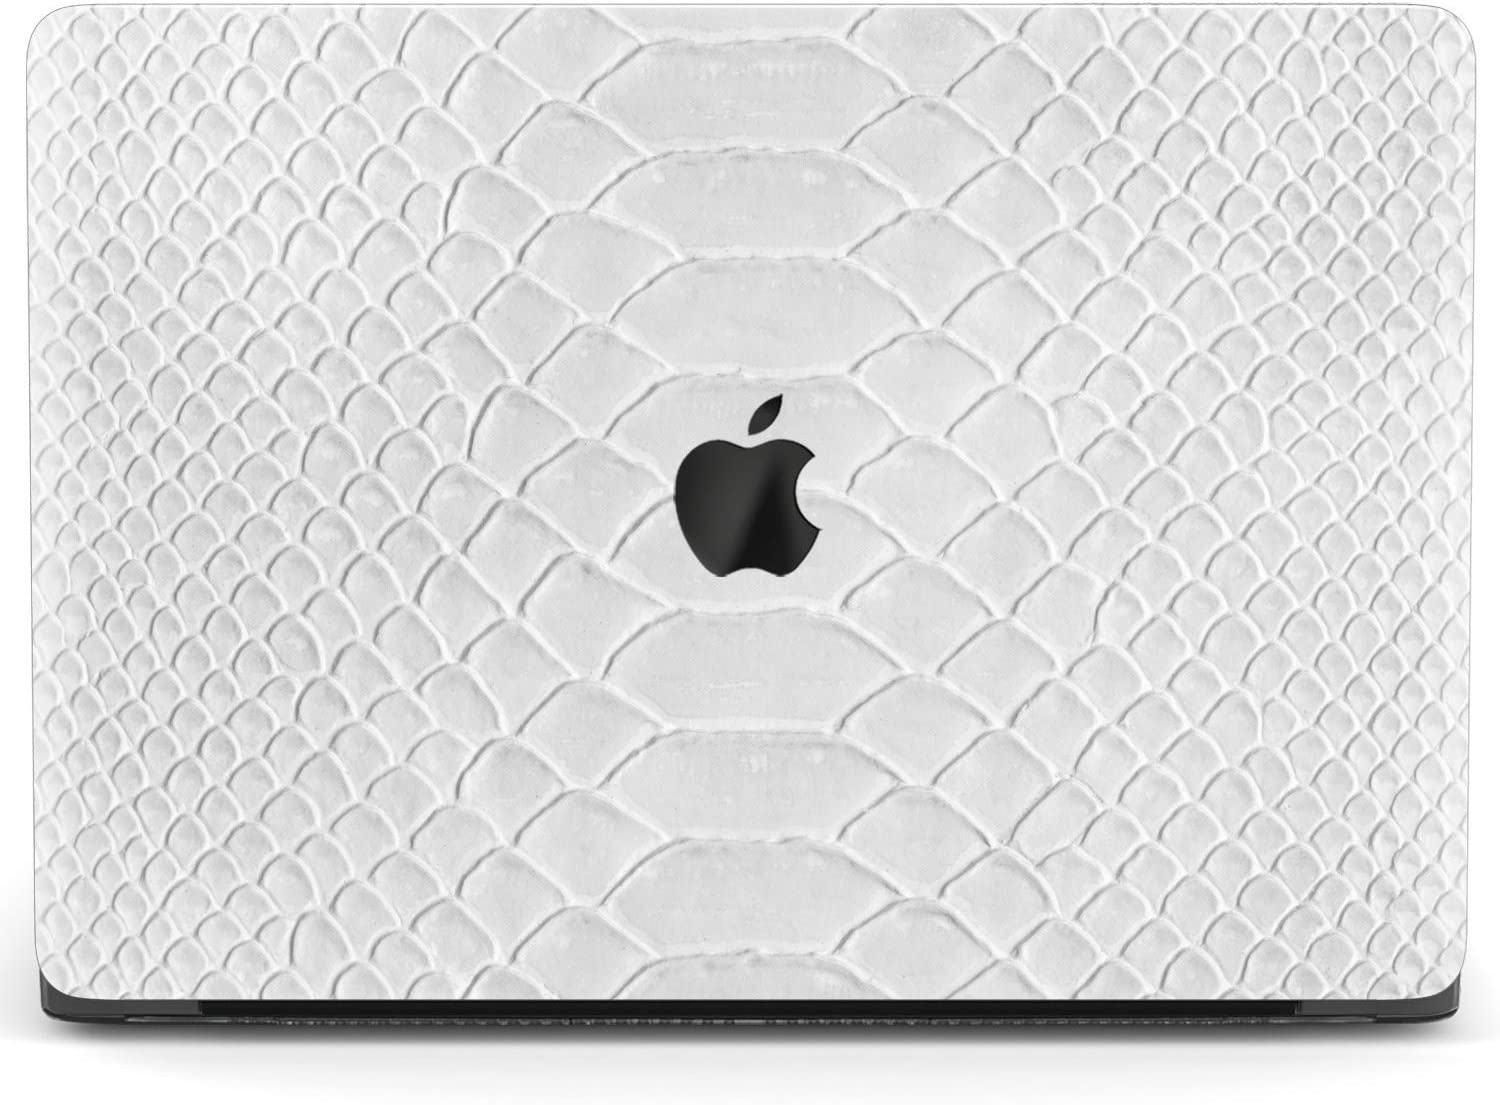 Mertak Hard Case for Apple MacBook Pro 16 Air 13 inch Mac 15 Retina 12 11 2020 2019 2018 2017 Print Leather Design Touch Bar Plastic Snake Skin Clear Protective Laptop Cover Luxury Solid White Basic